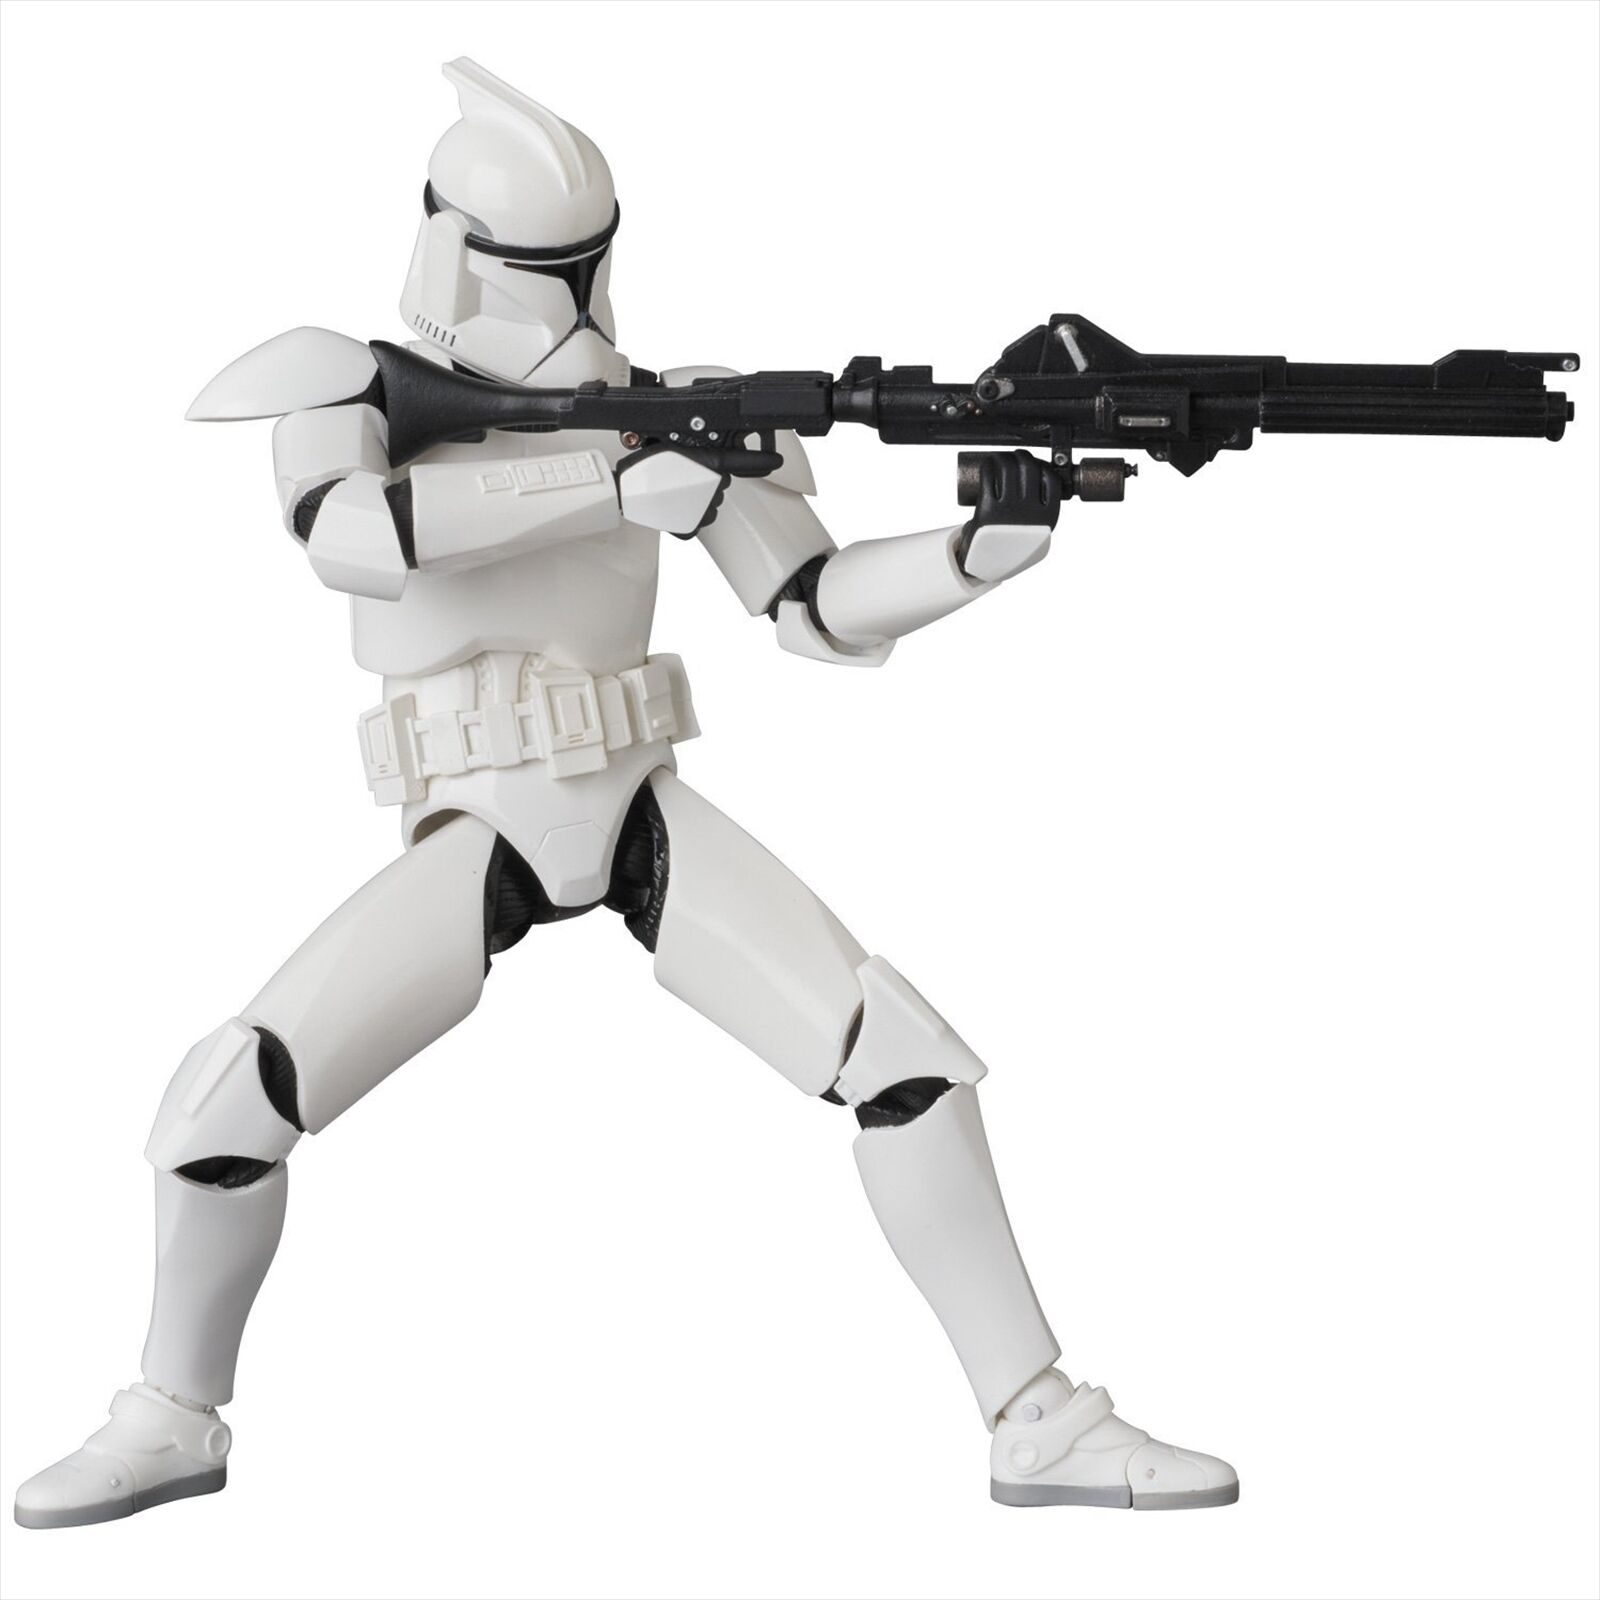 MEDICOM MEDICOM MEDICOM TOY MAFEX CLONE TROOPER Star Wars Episode II Action Figure 8aab05